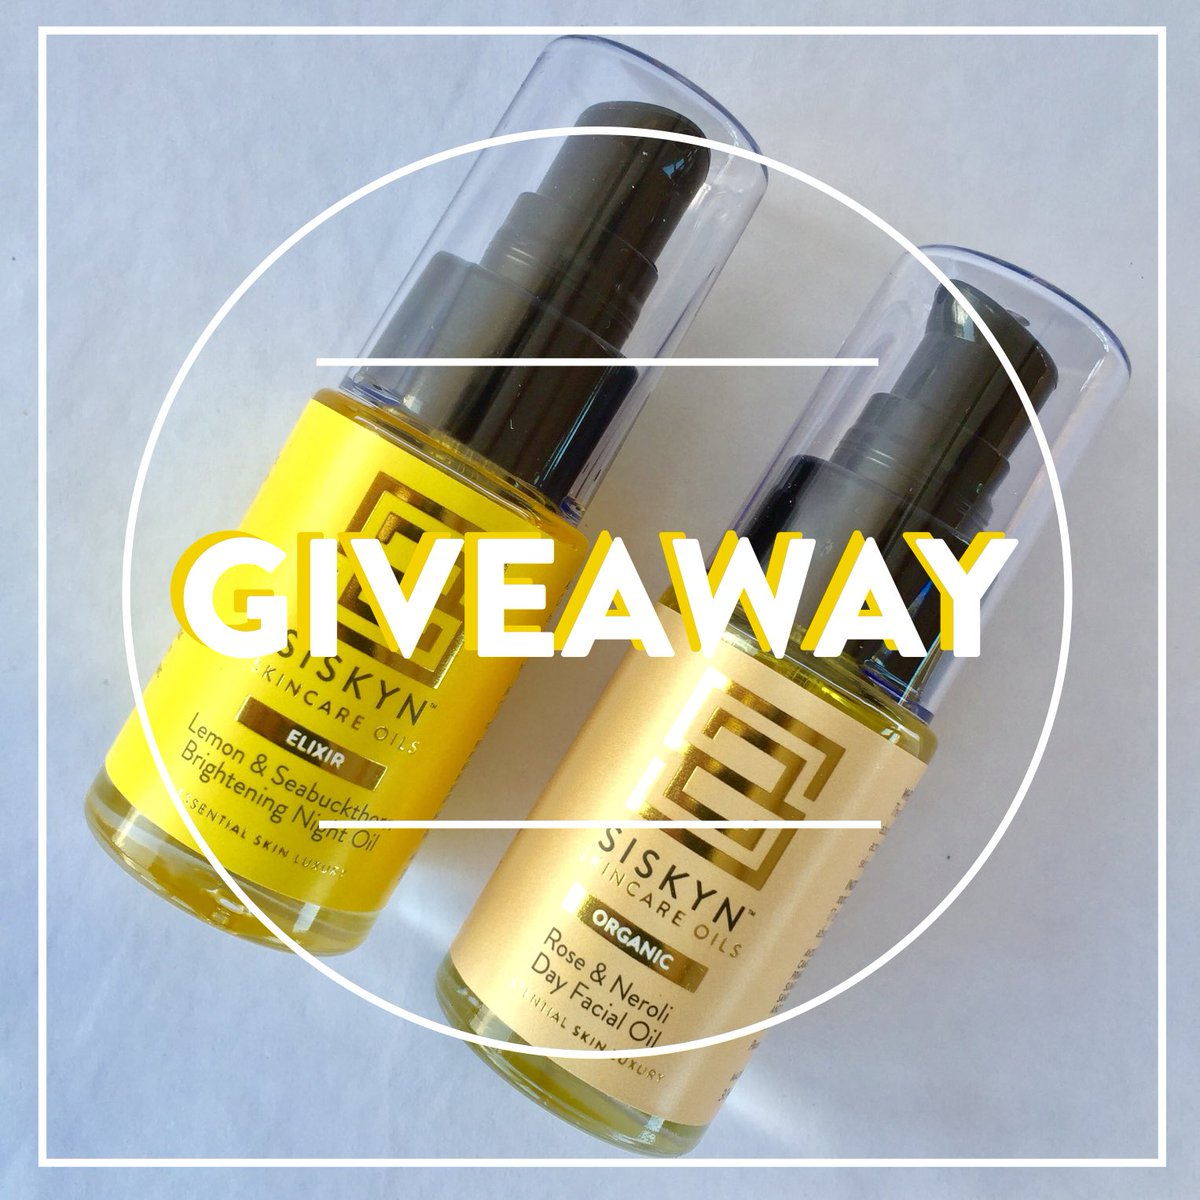 #follow &amp; #retweet to #win 2 multi award winning face oils! #Winner announced 27/08/17 (UK only) #comp #giveaway #Competition #goodluck<br>http://pic.twitter.com/CbBk955Dxw